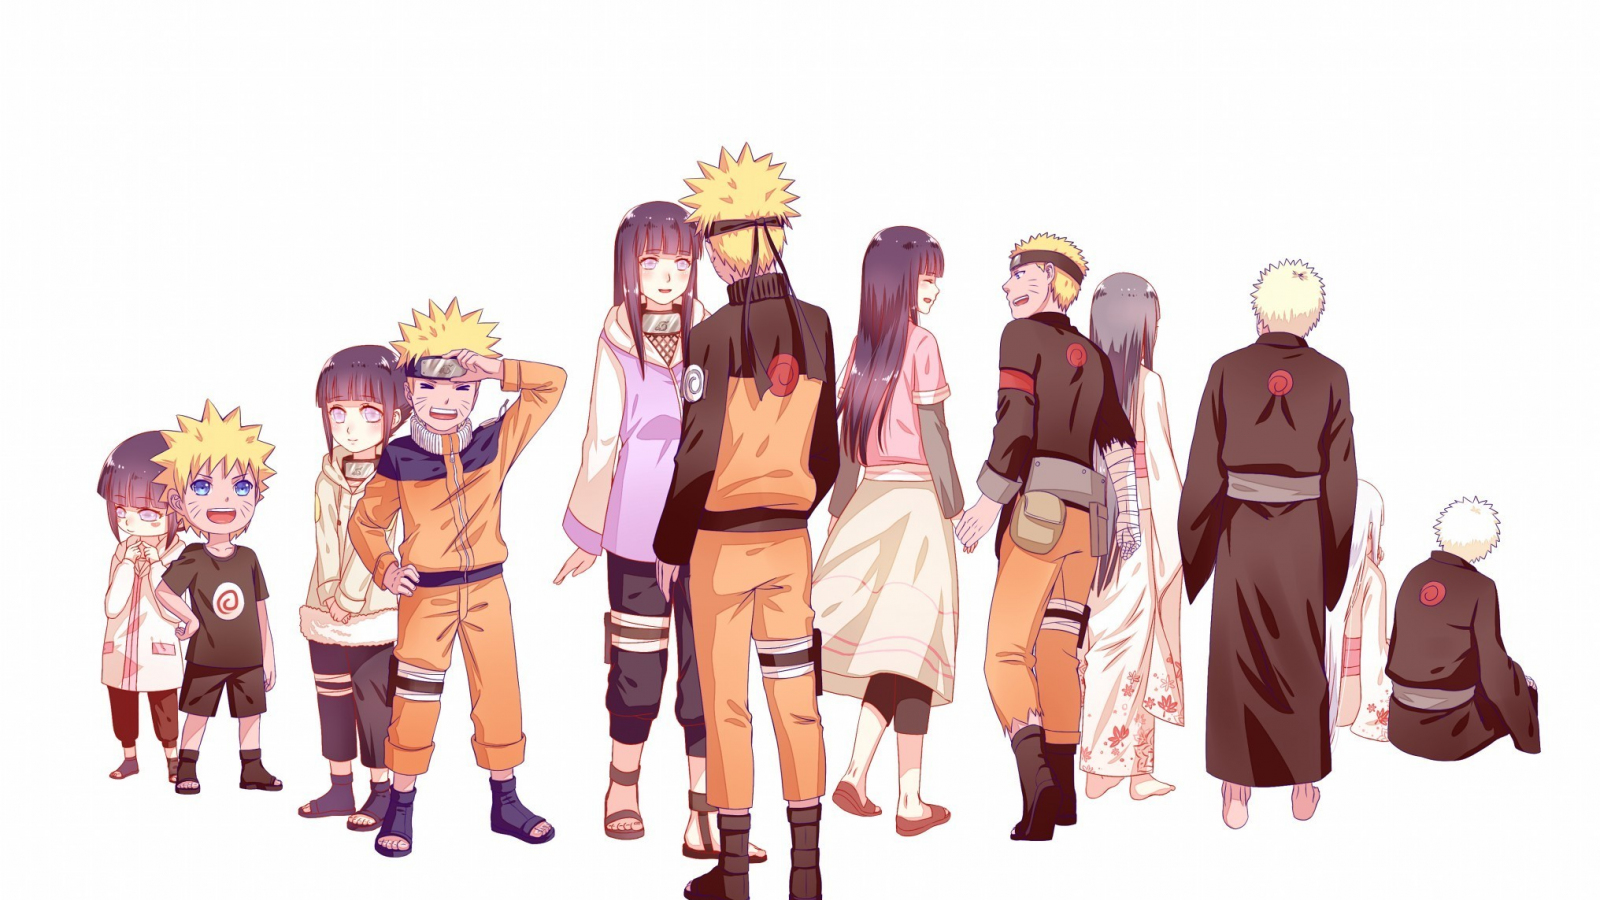 Desktop Wallpaper Naruto Shippuden Anime Characters Hd Image Picture Background 58f6d3